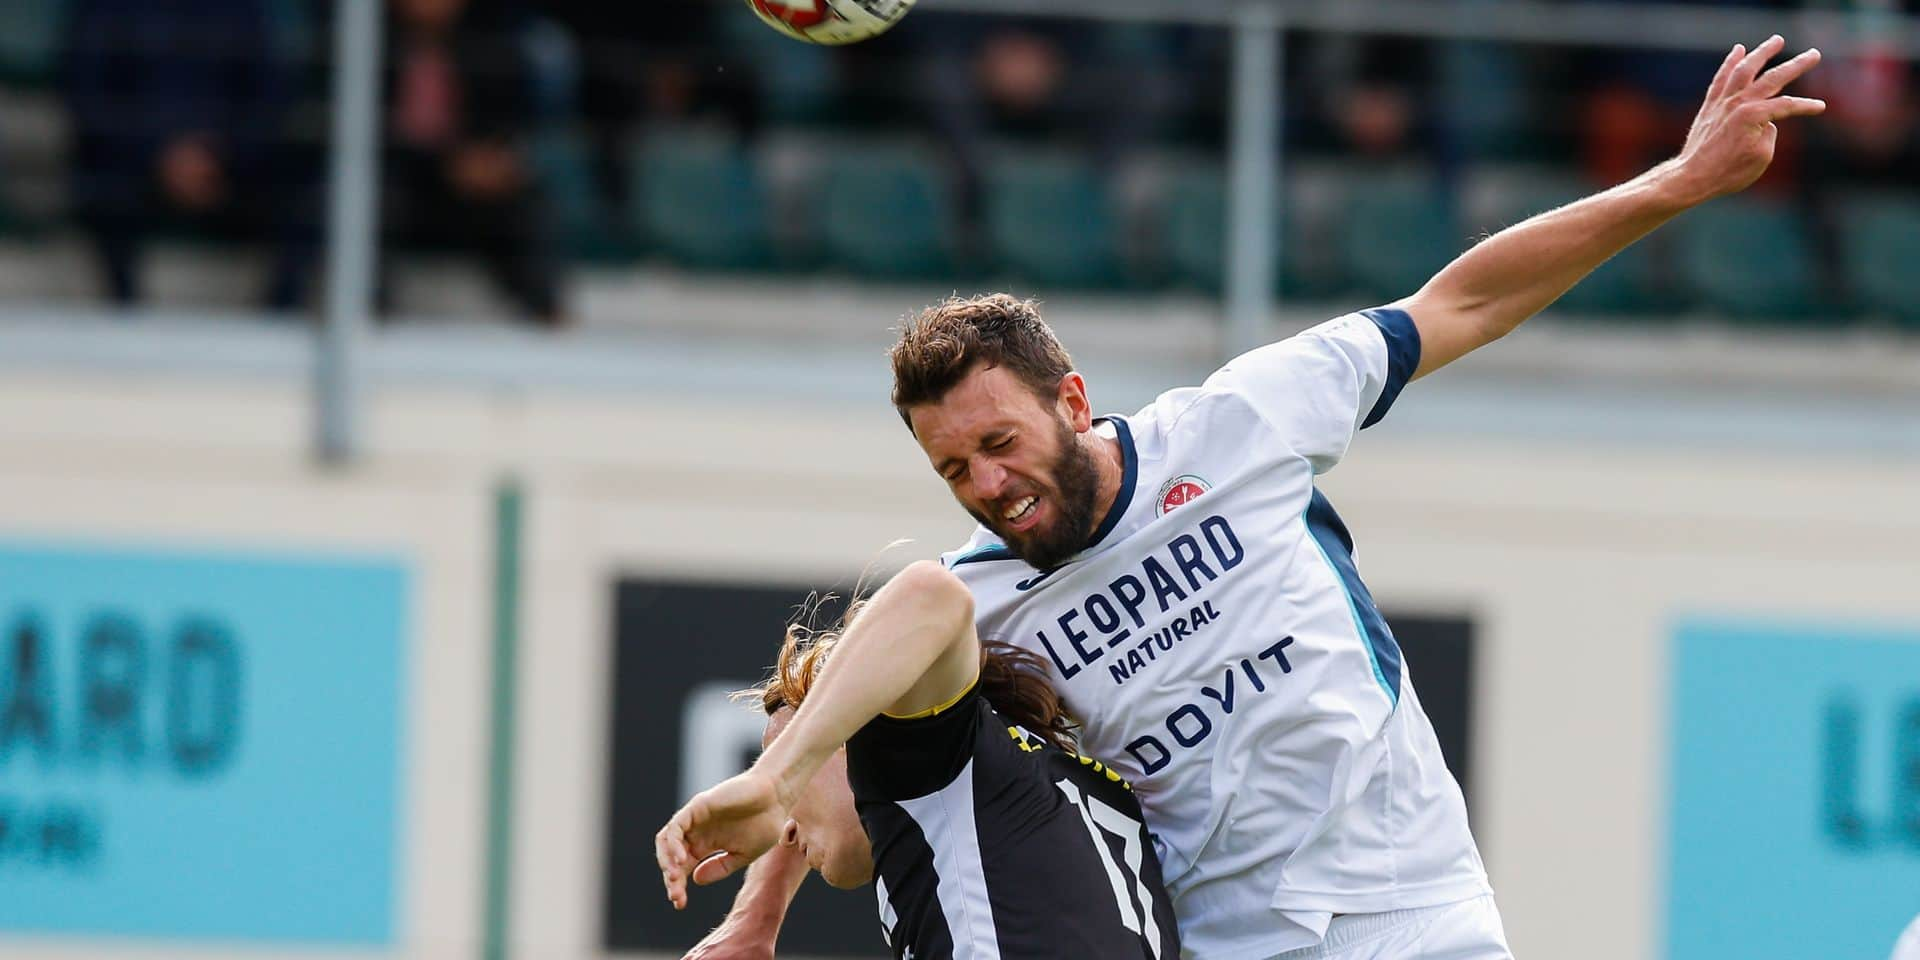 Lokeren's Guus Hupperts and Virton's Manuel Angiulli fight for the ball during a soccer match between Royal Excelsior Virton and KSC Lokeren, Sunday 08 September 2019 in Virton, on day five of the 'Proximus League' 1B division of the Belgian soccer championship. BELGA PHOTO BRUNO FAHY